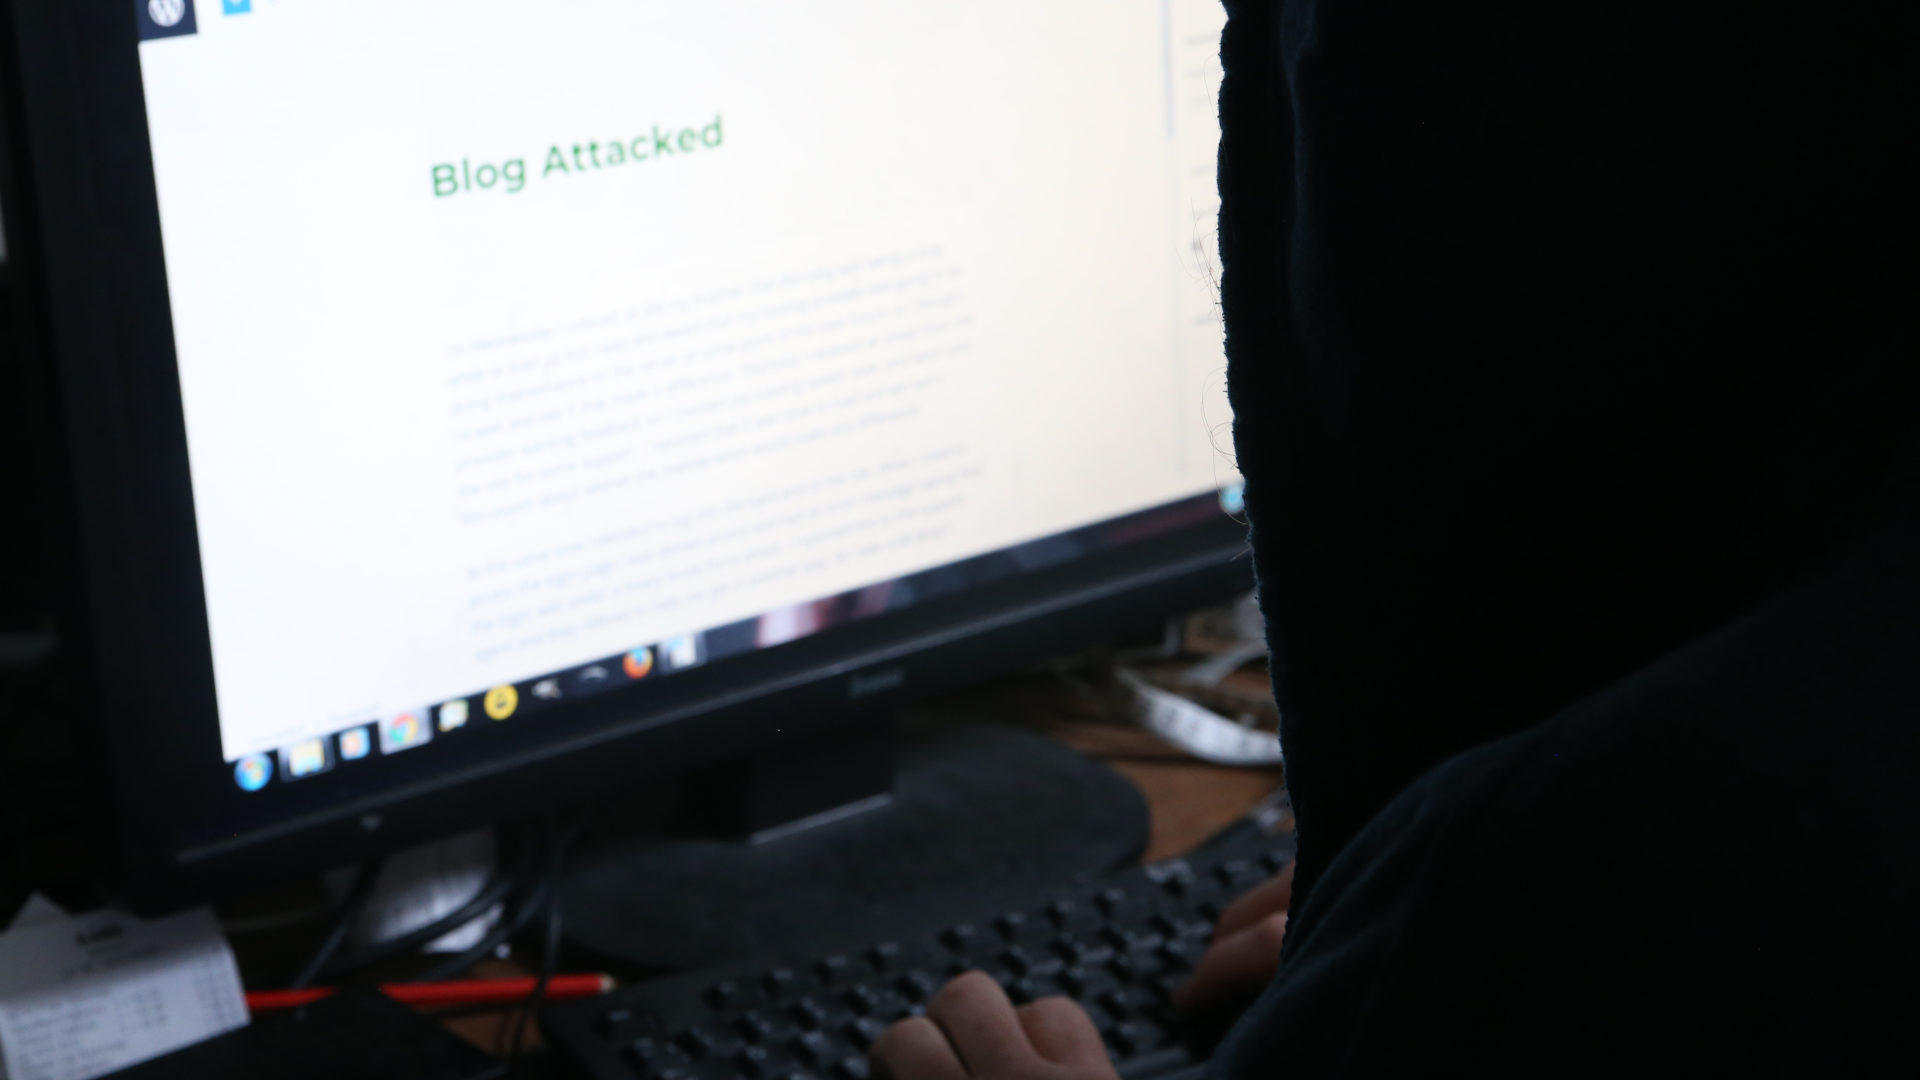 Hooded person in front of computer screen